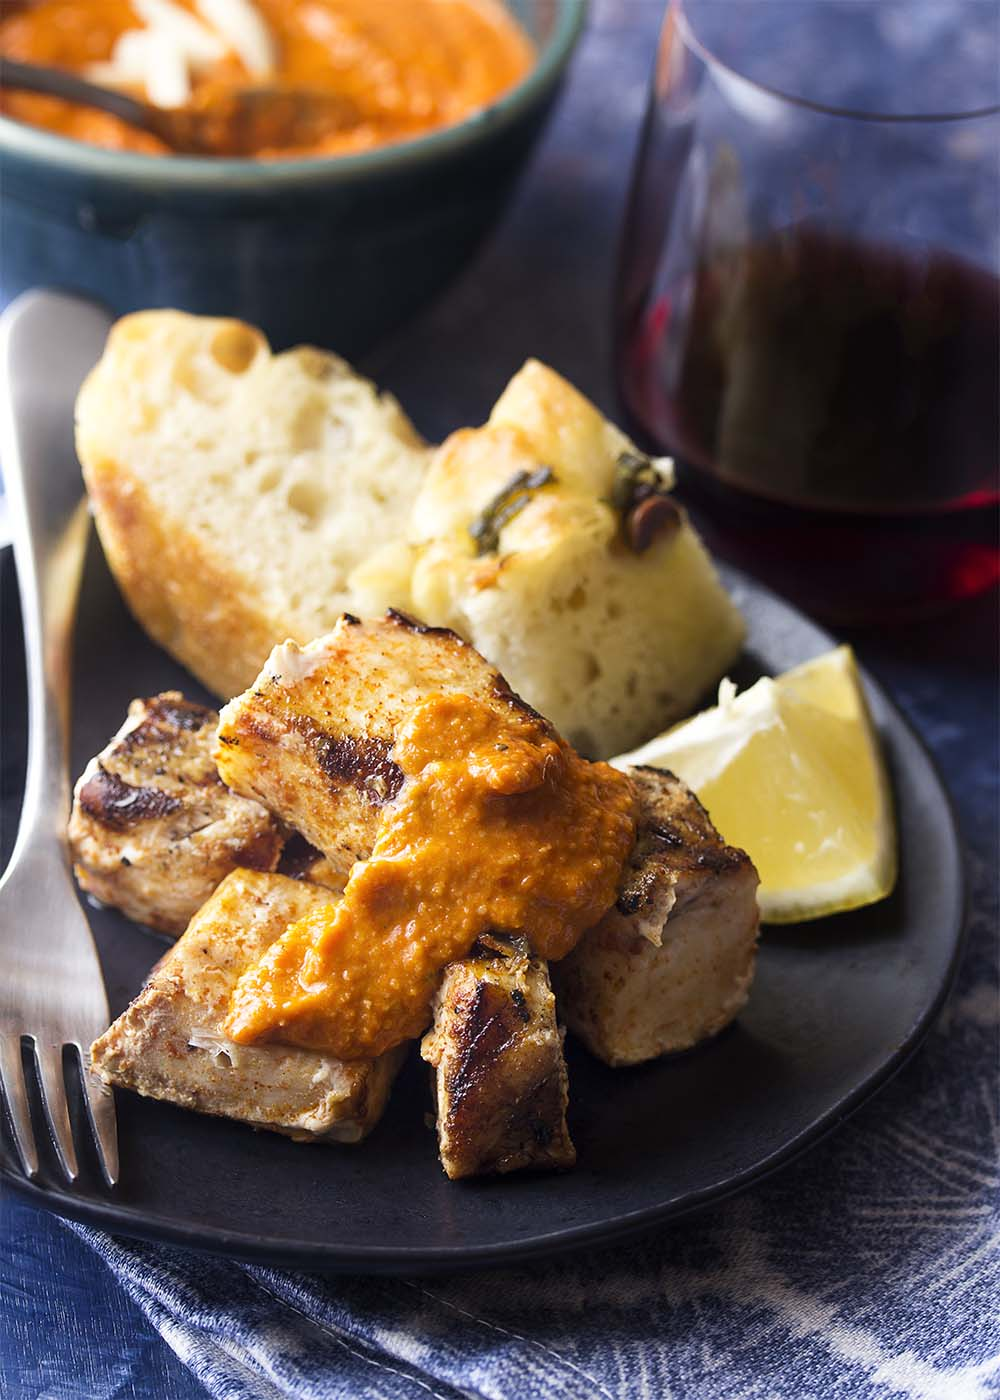 Juicy grilled cubes of swordfish piled on a plate and topped romesco sauce.